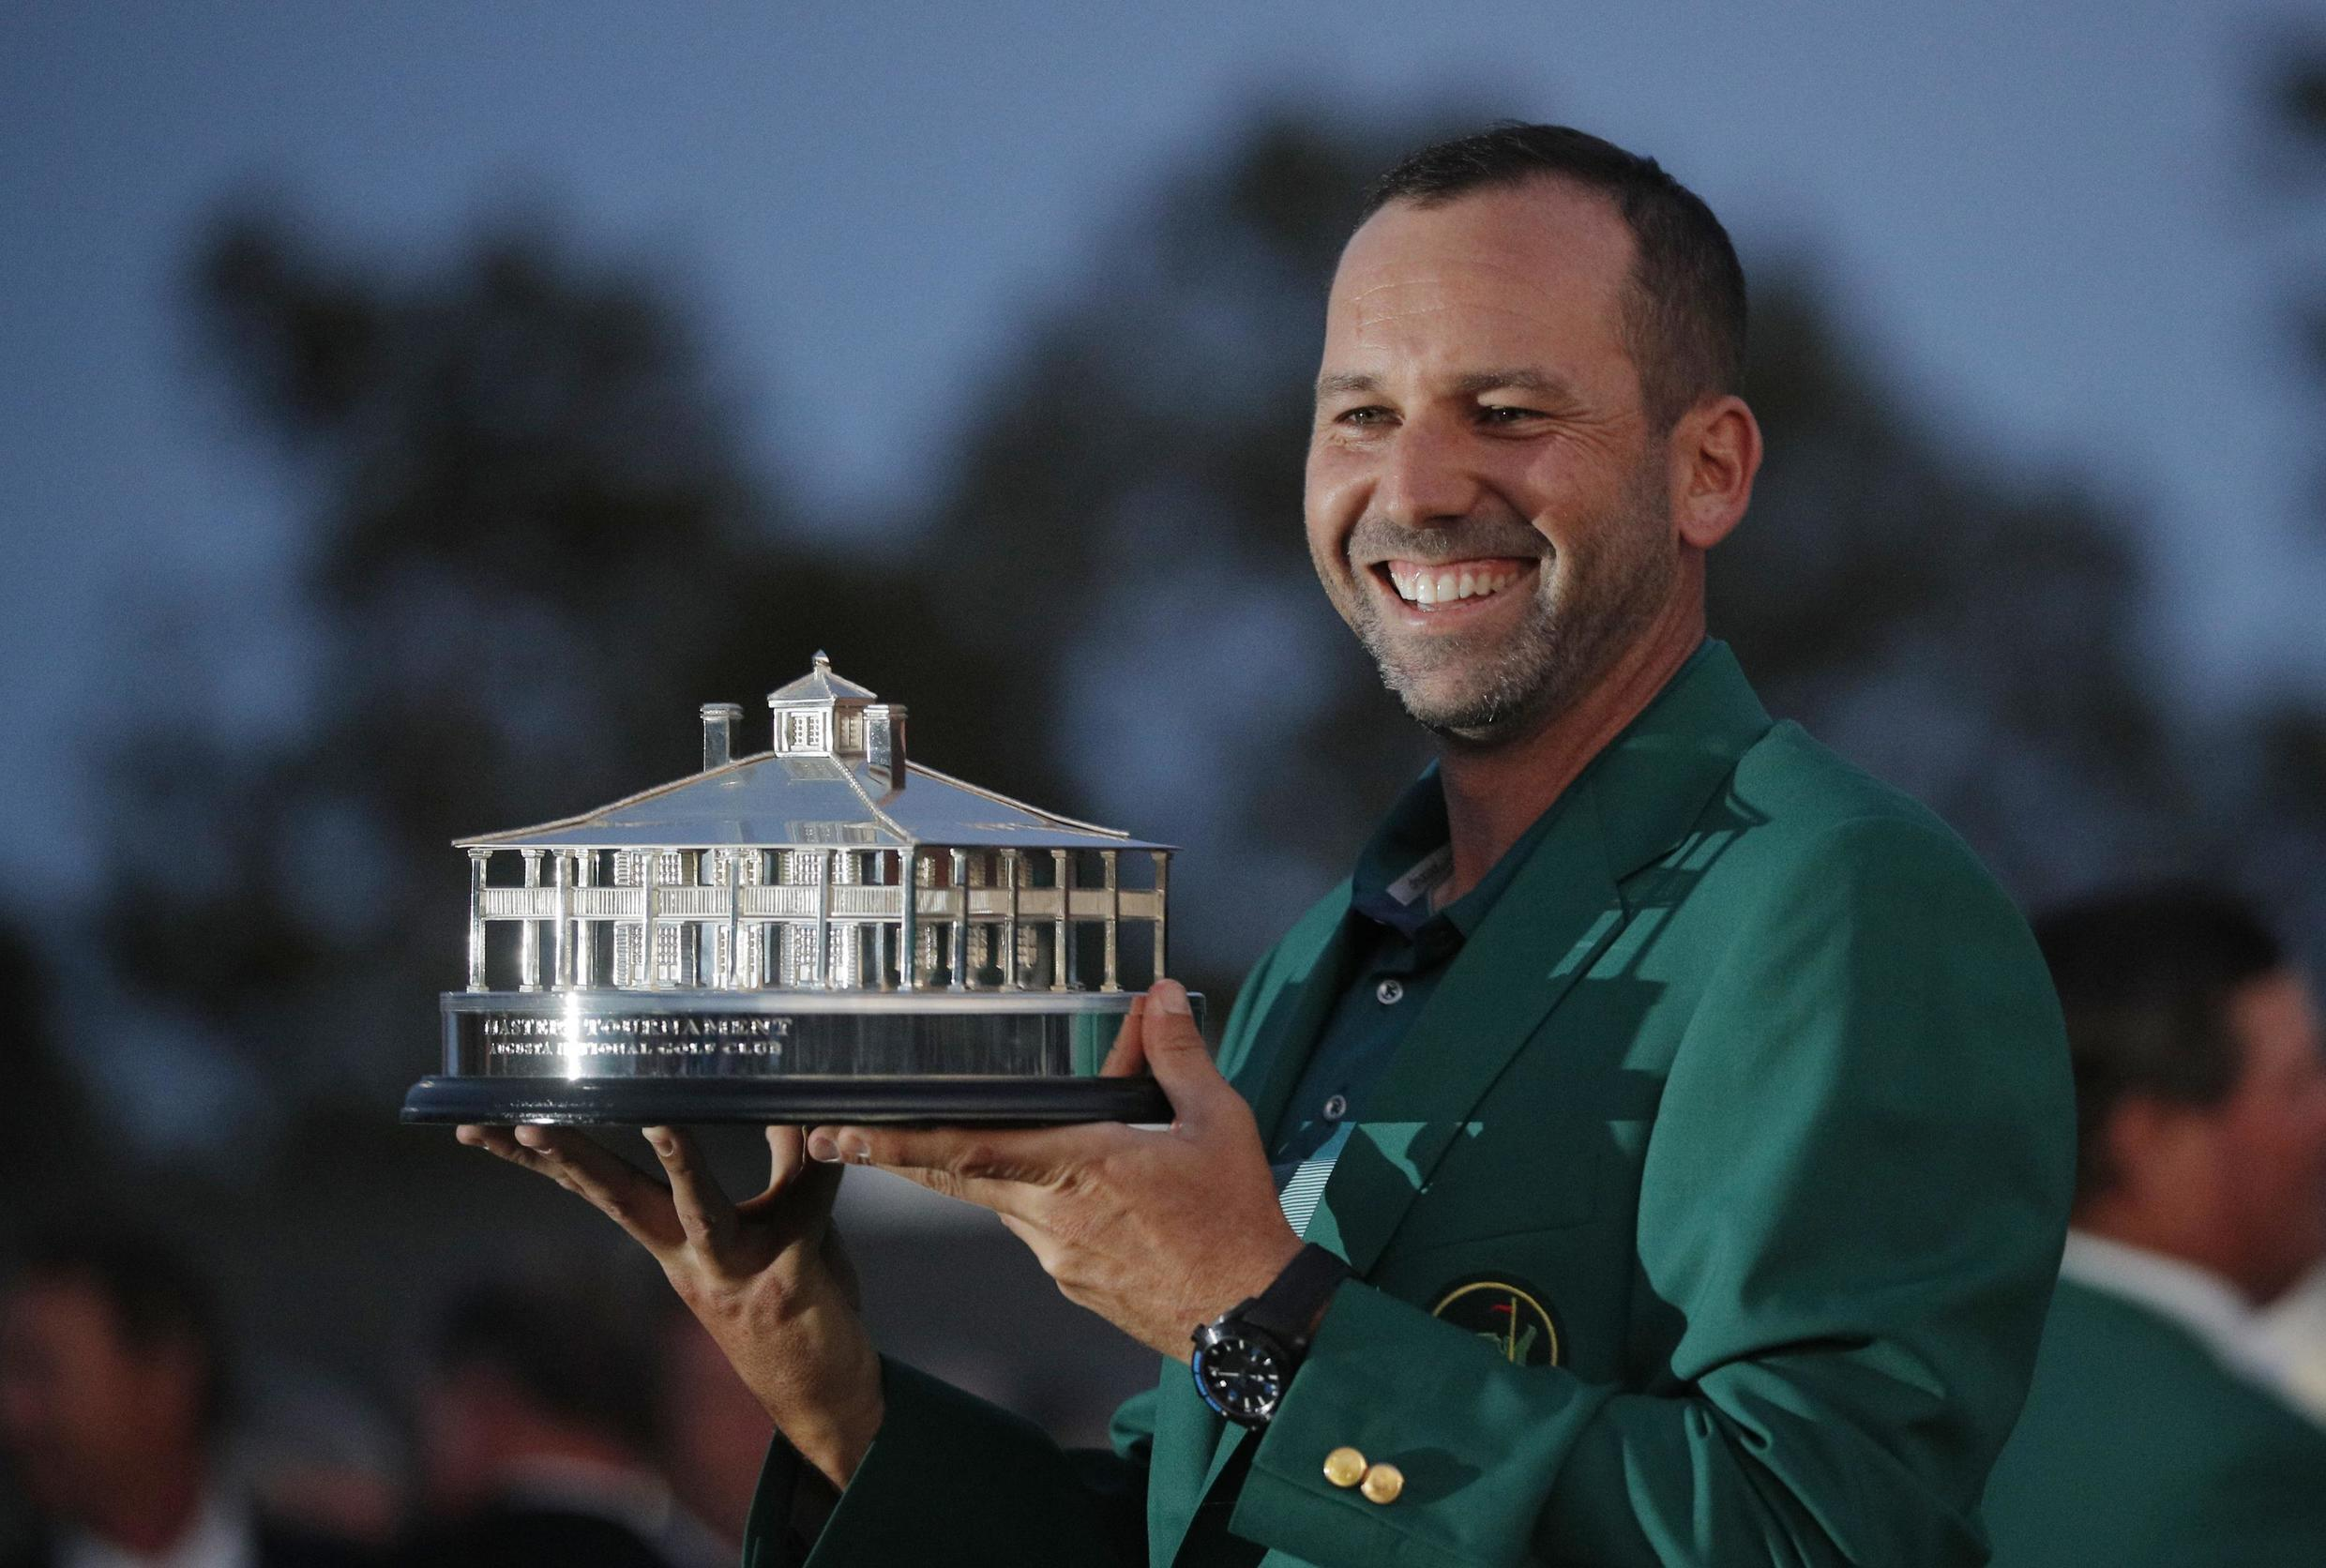 Sergio Garcia holds the Masters trophy after winning the 2017 Masters golf tournament at Augusta National Golf Club in Augusta, Georgia on April 9, 2017.